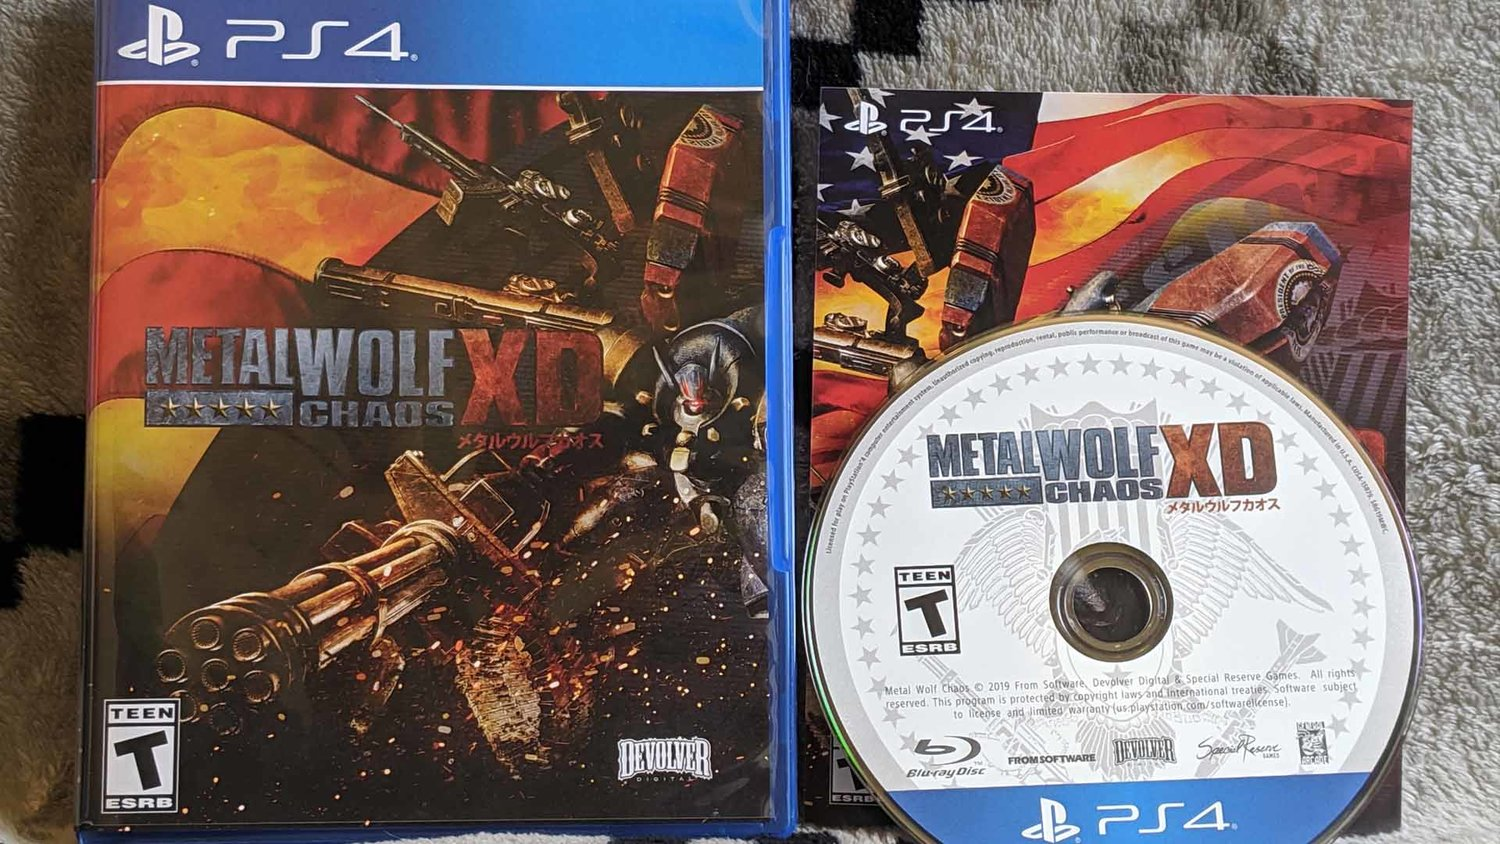 METAL WOLF CHAOS XD Review: Over The Top Mech Goodness